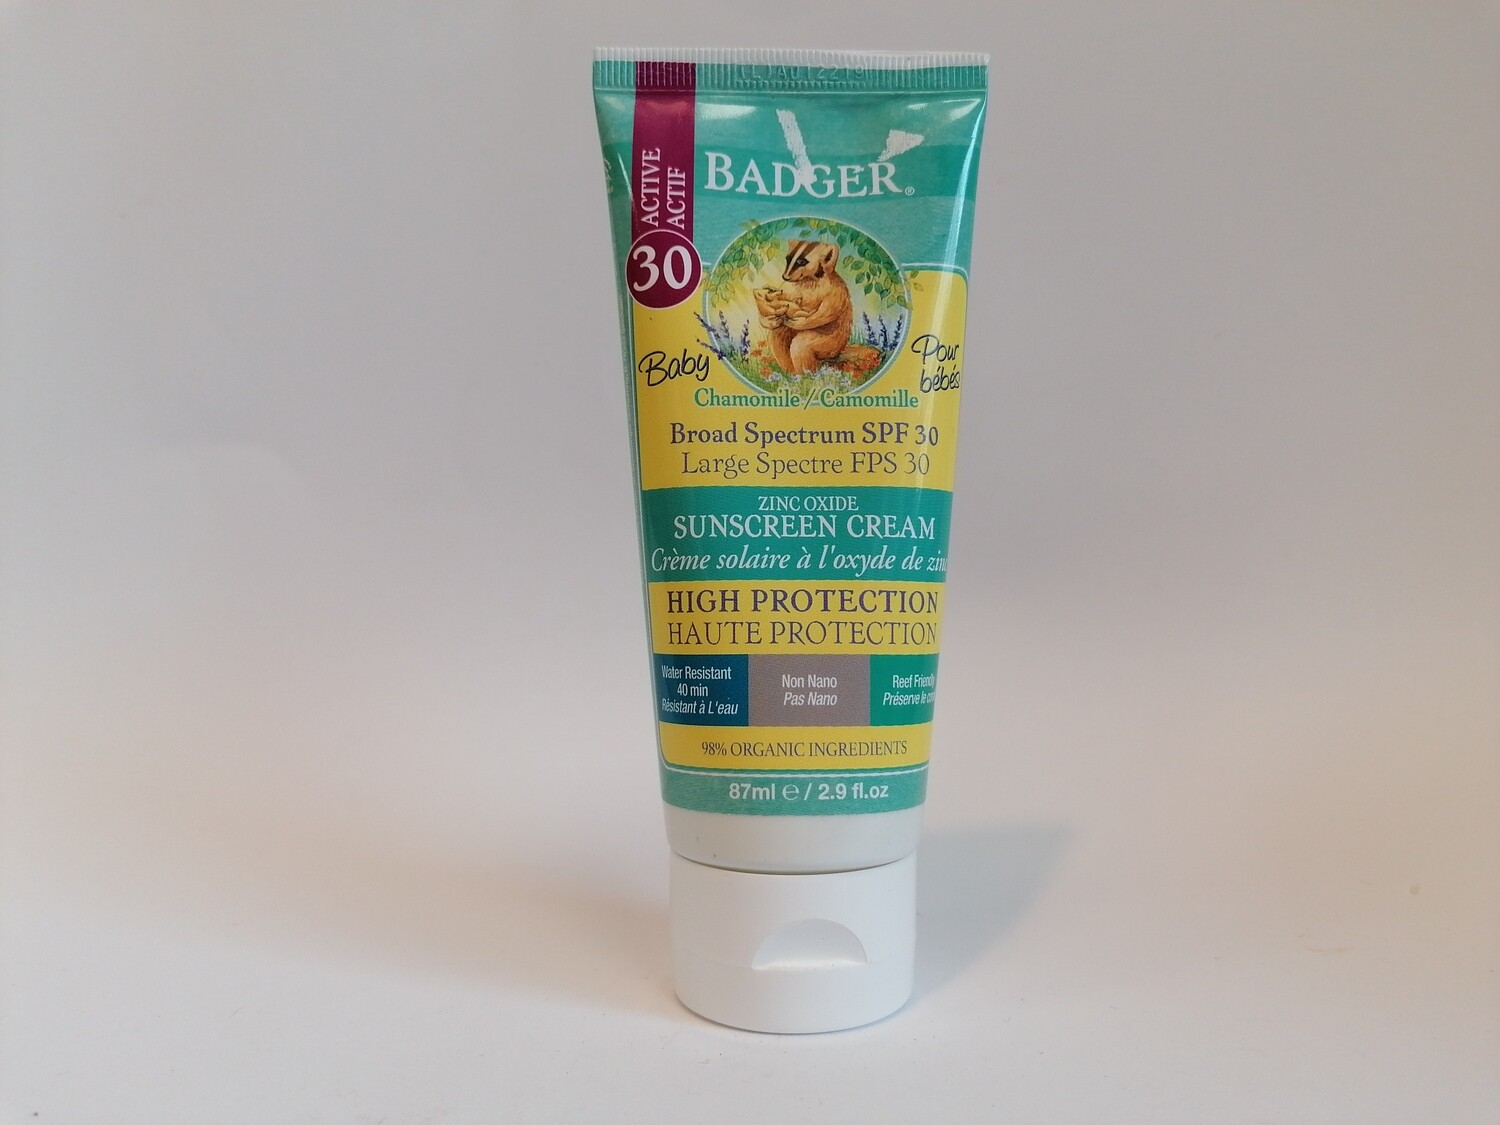 SPECIAL OFFER! Badger Baby Sun Cream SPF30